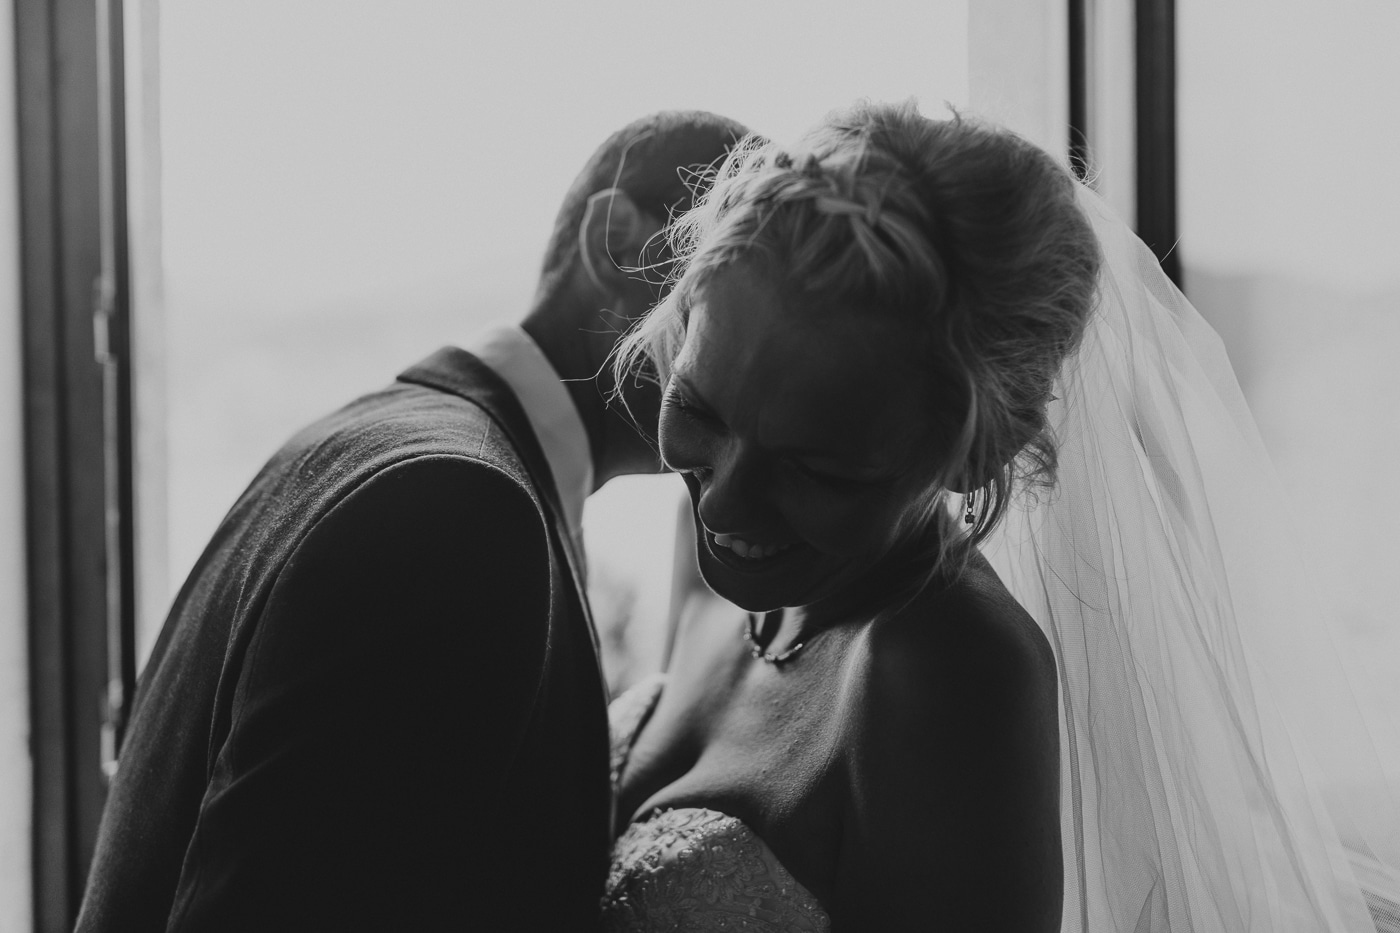 Bride with braid and veil in hair laughing as husband whispers in her ear